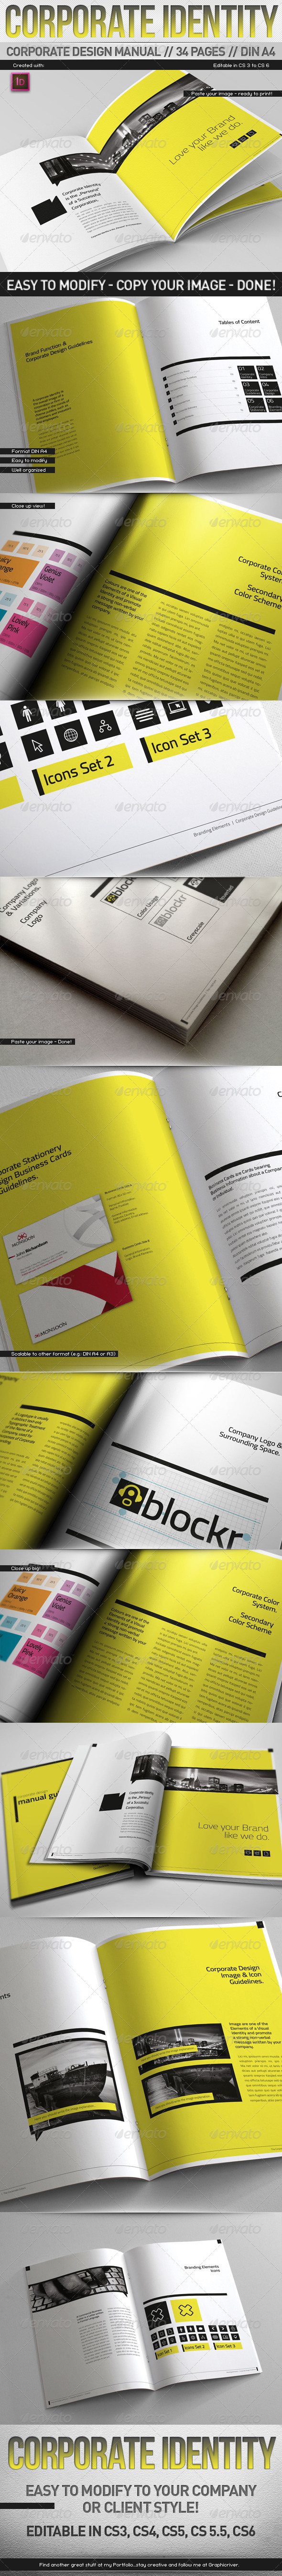 Corporate Design Manual Guide DIN A4 // 34 Pages - Corporate Brochures